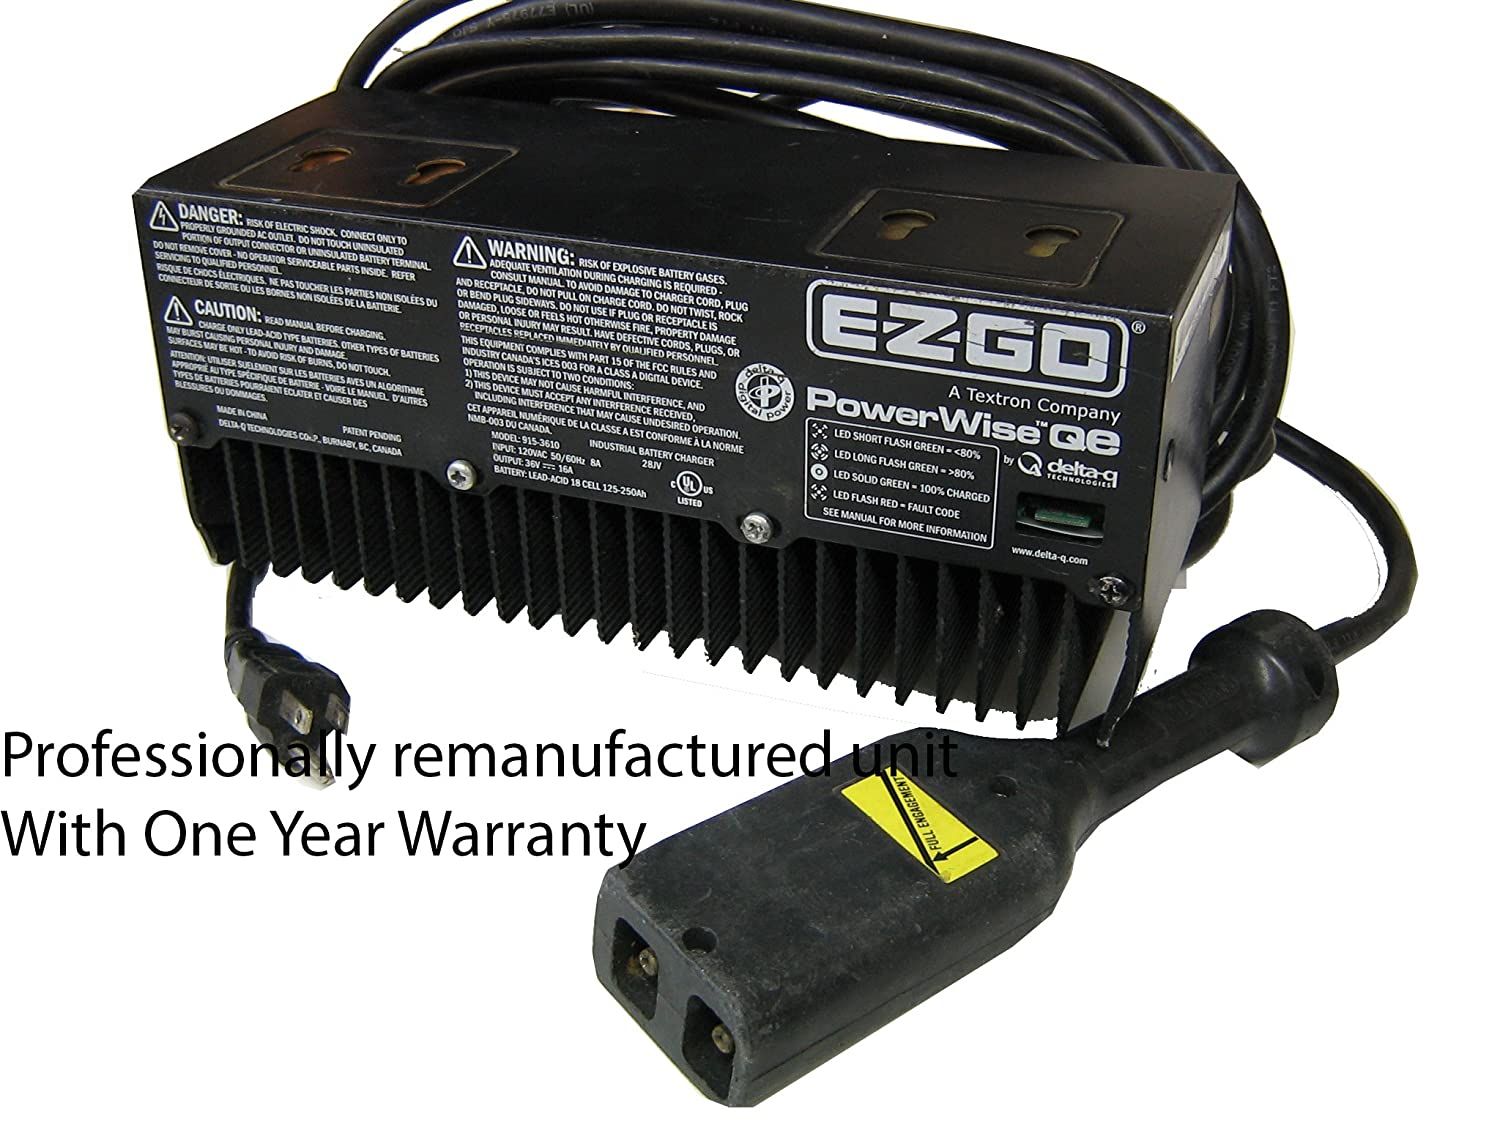 Amazon.com : EZ-GO 915-3610 Battery Charger 36V Powerwise Qe G3610 : Sports  & Outdoors